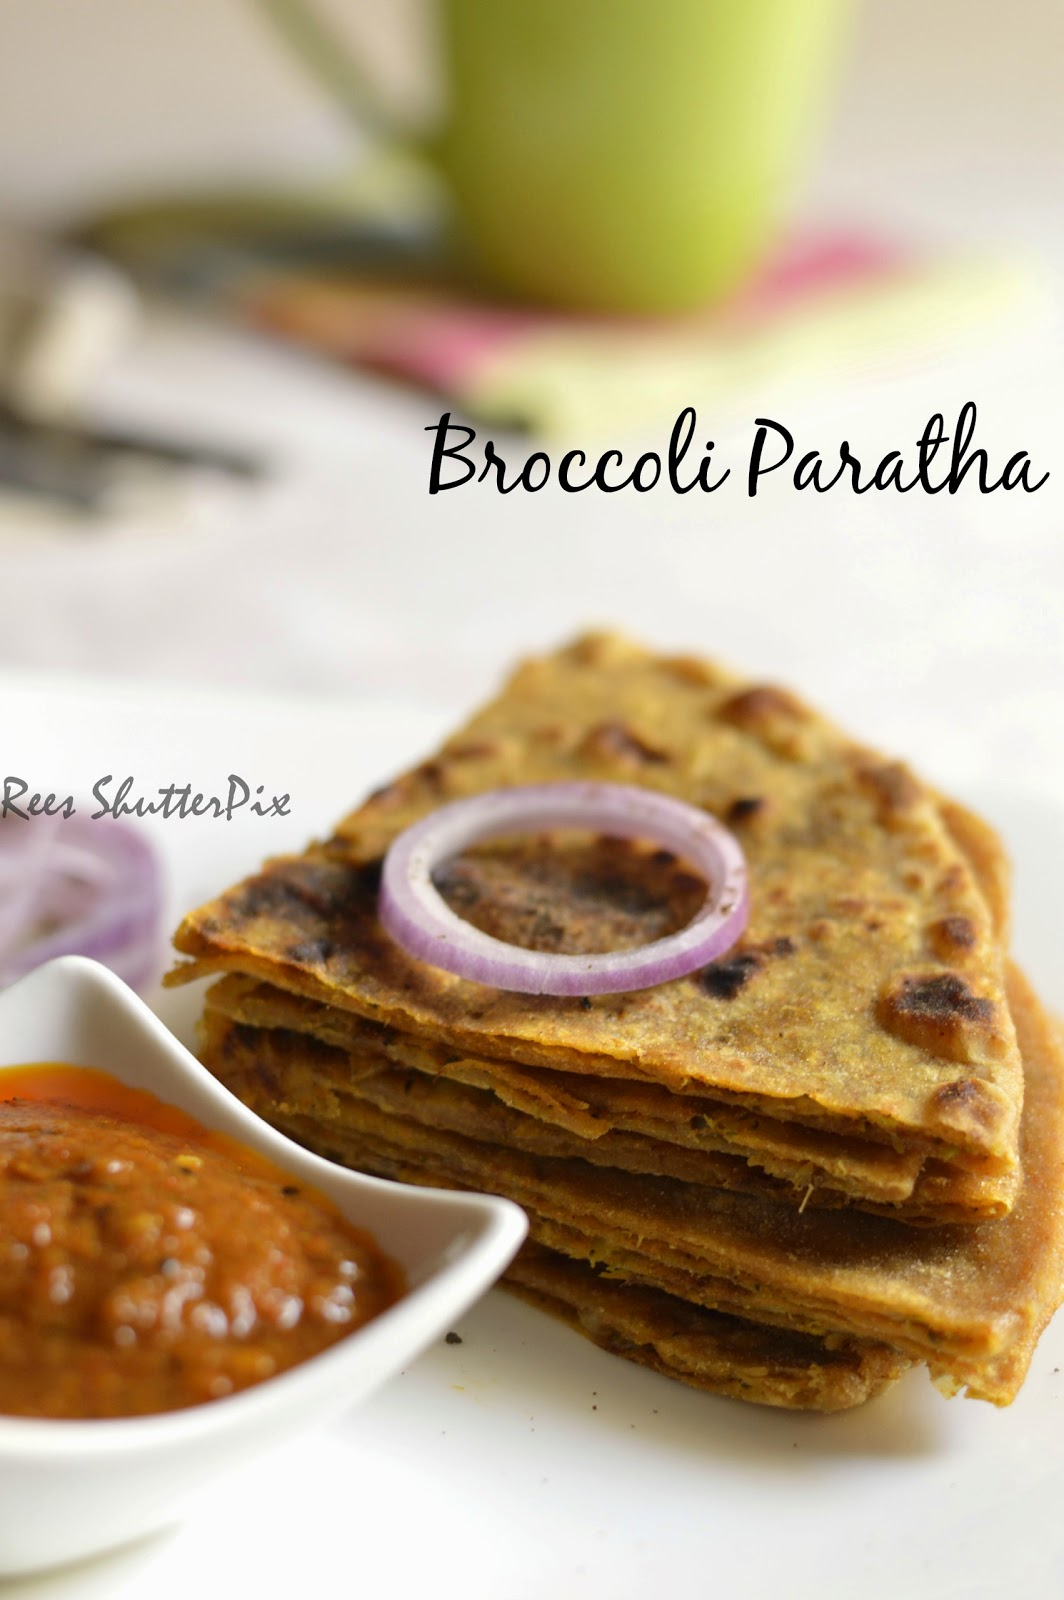 broccoli paratha recipe, paratha recipe indian, Indian paratha recipes, broccoli recipes